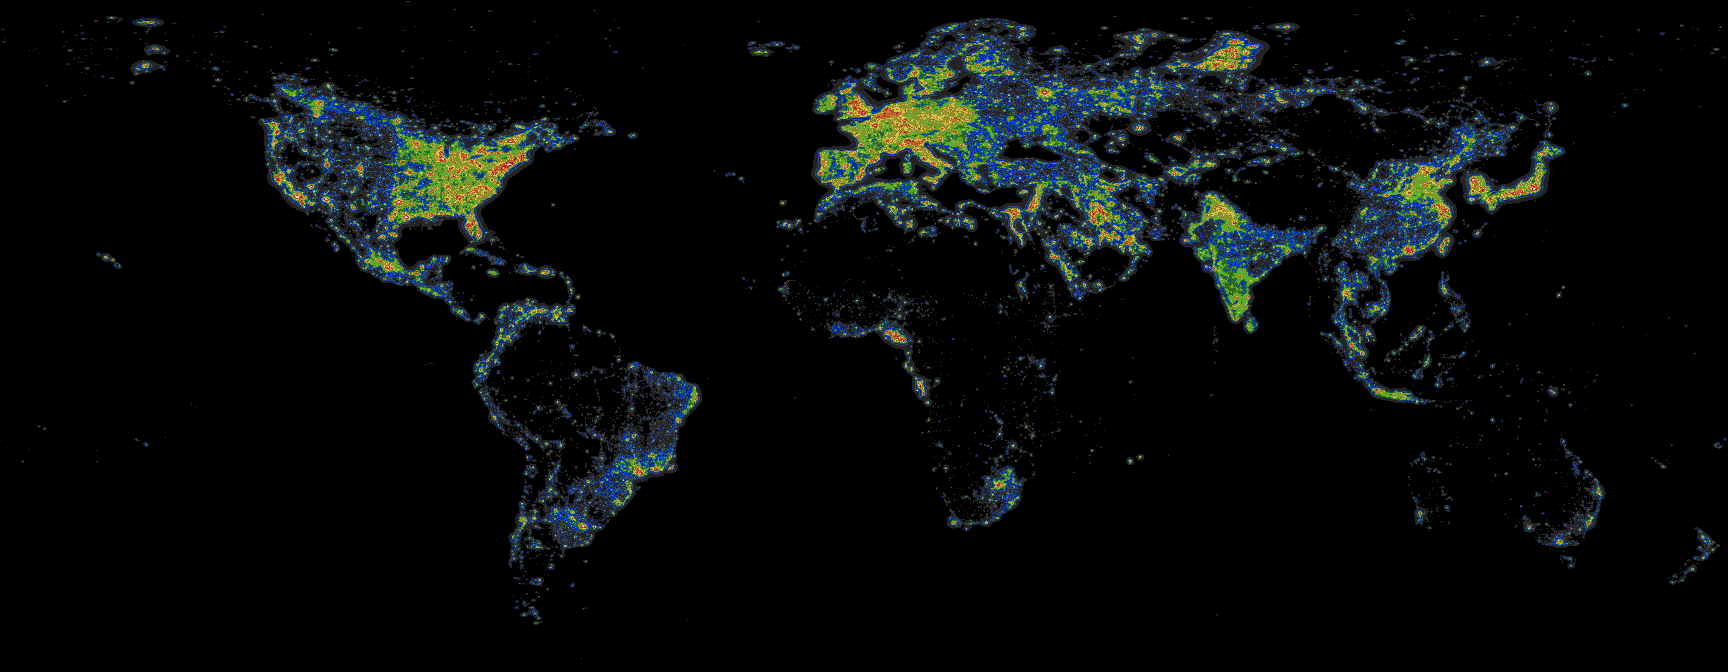 Light Pollution Atlas 2006